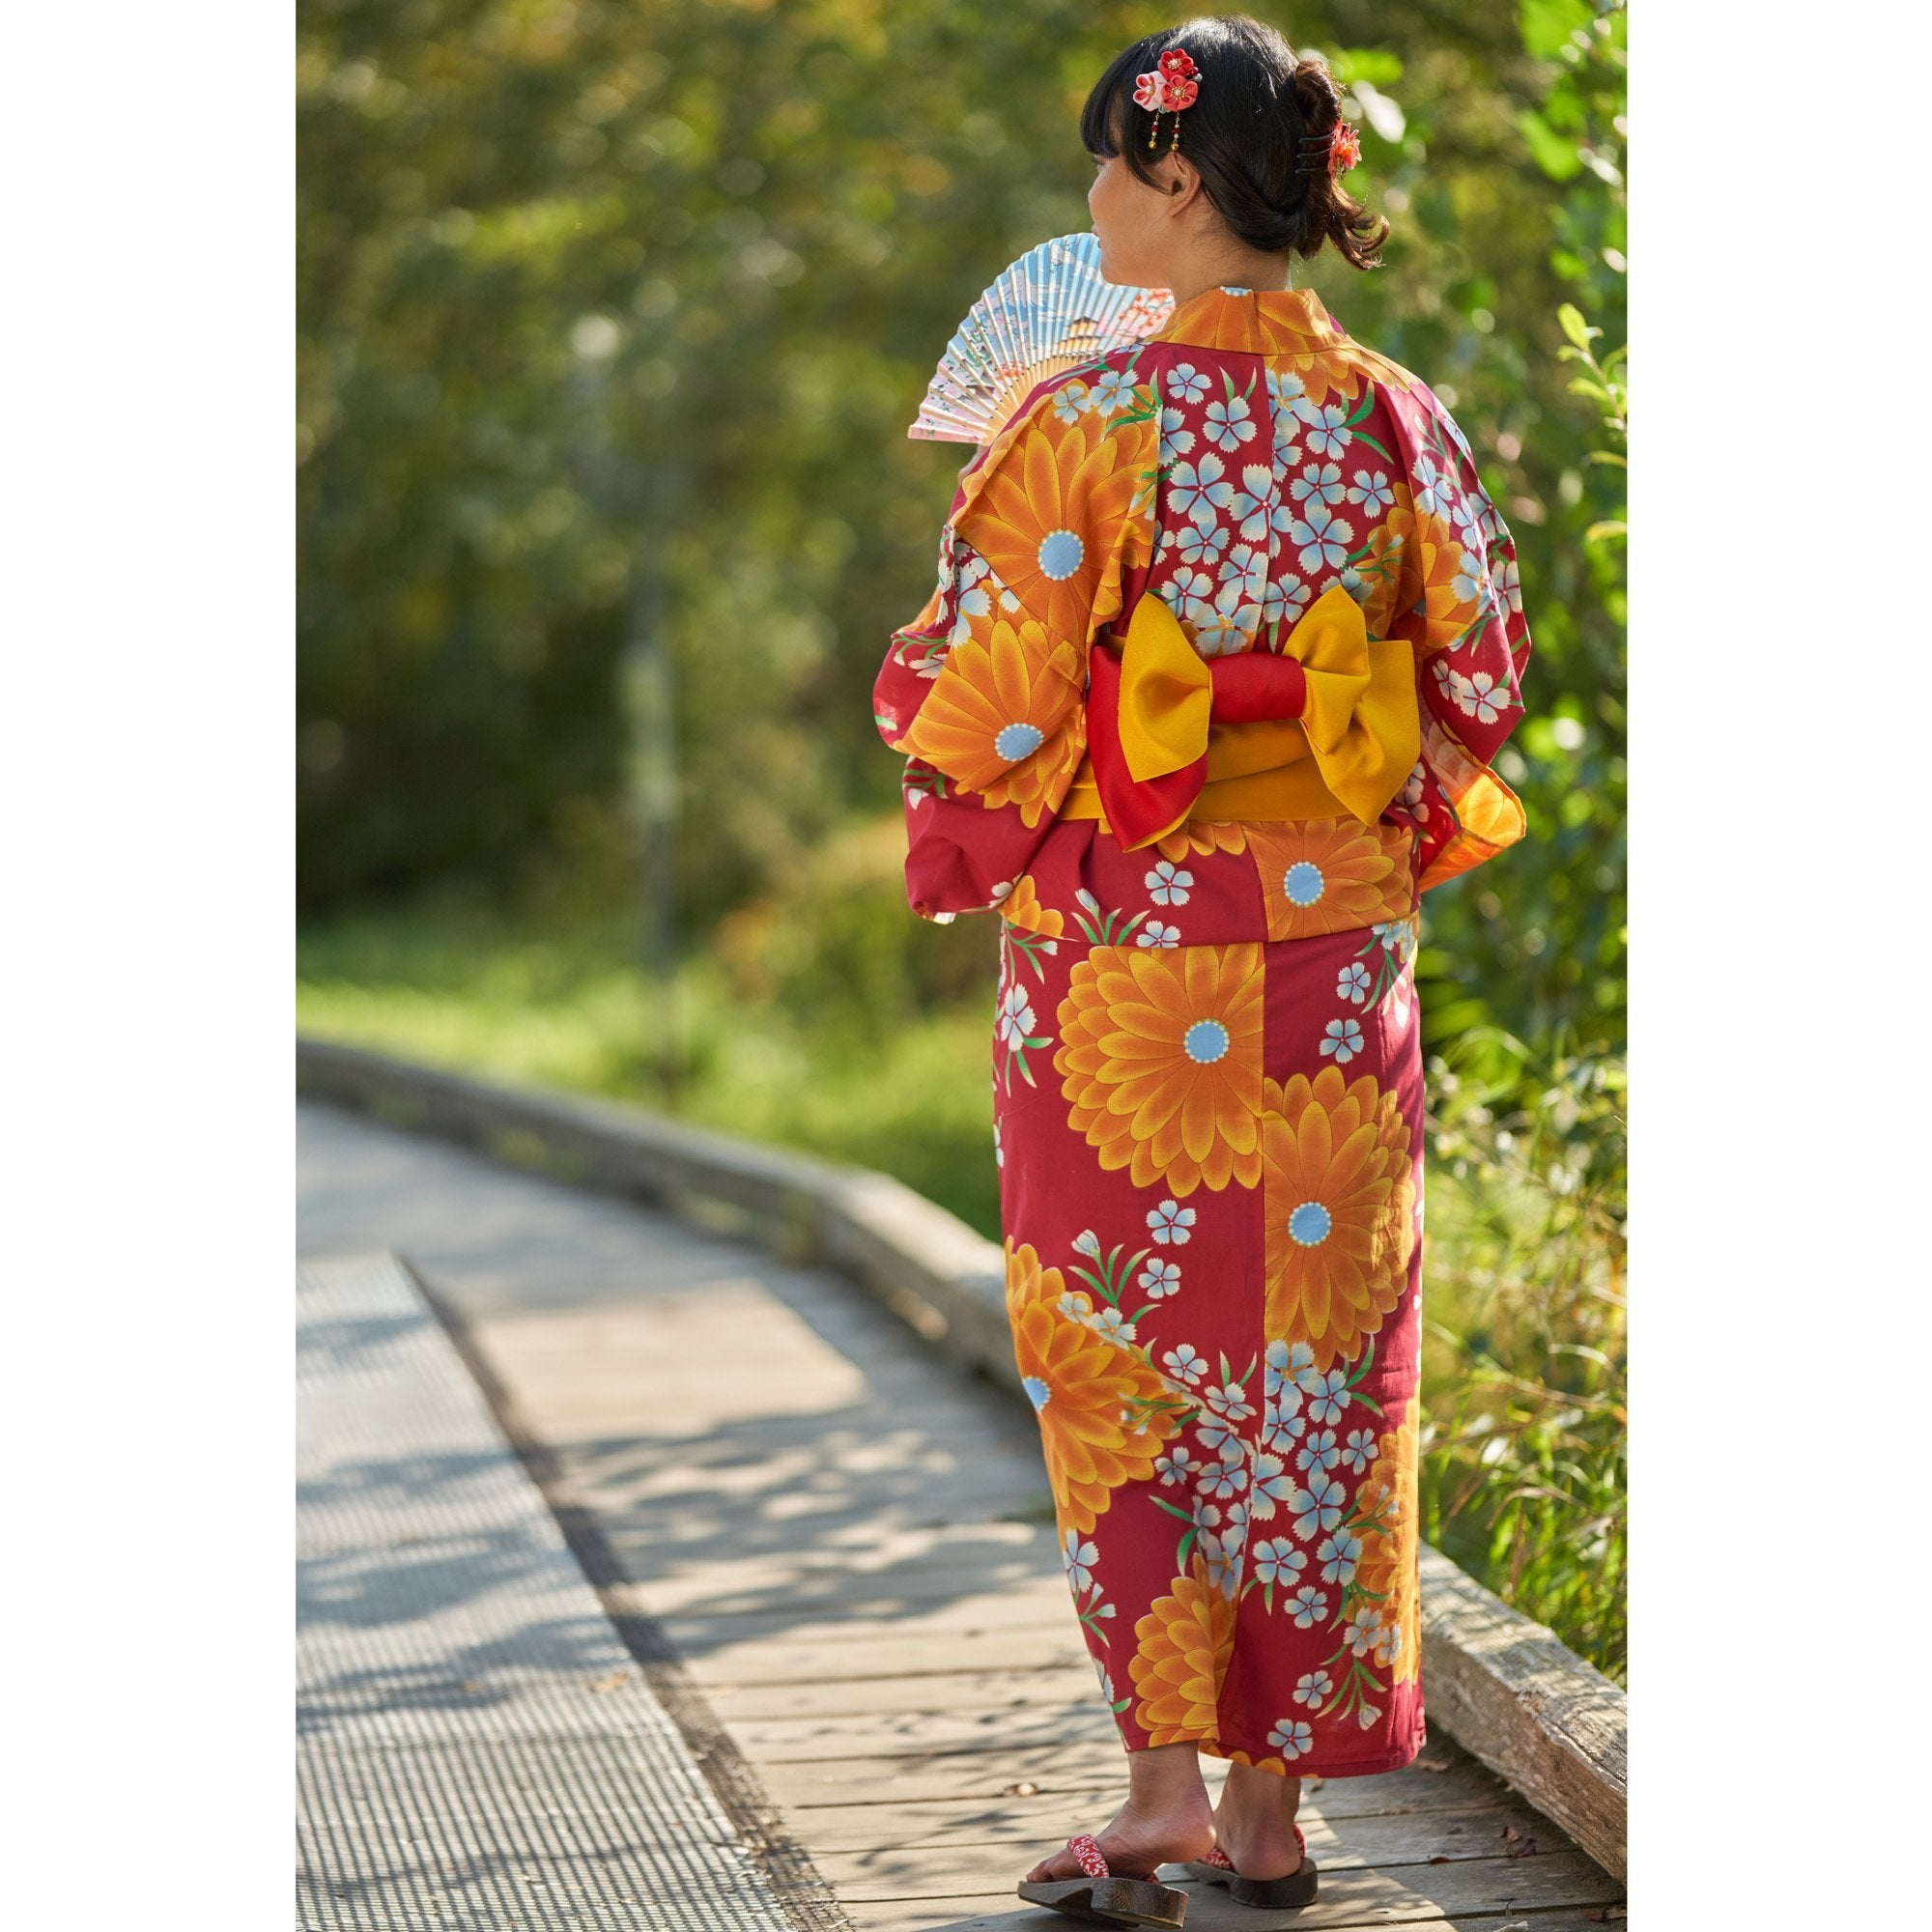 Cute Cotton Yukata Choose Your Size And Design MADE TO ORDER